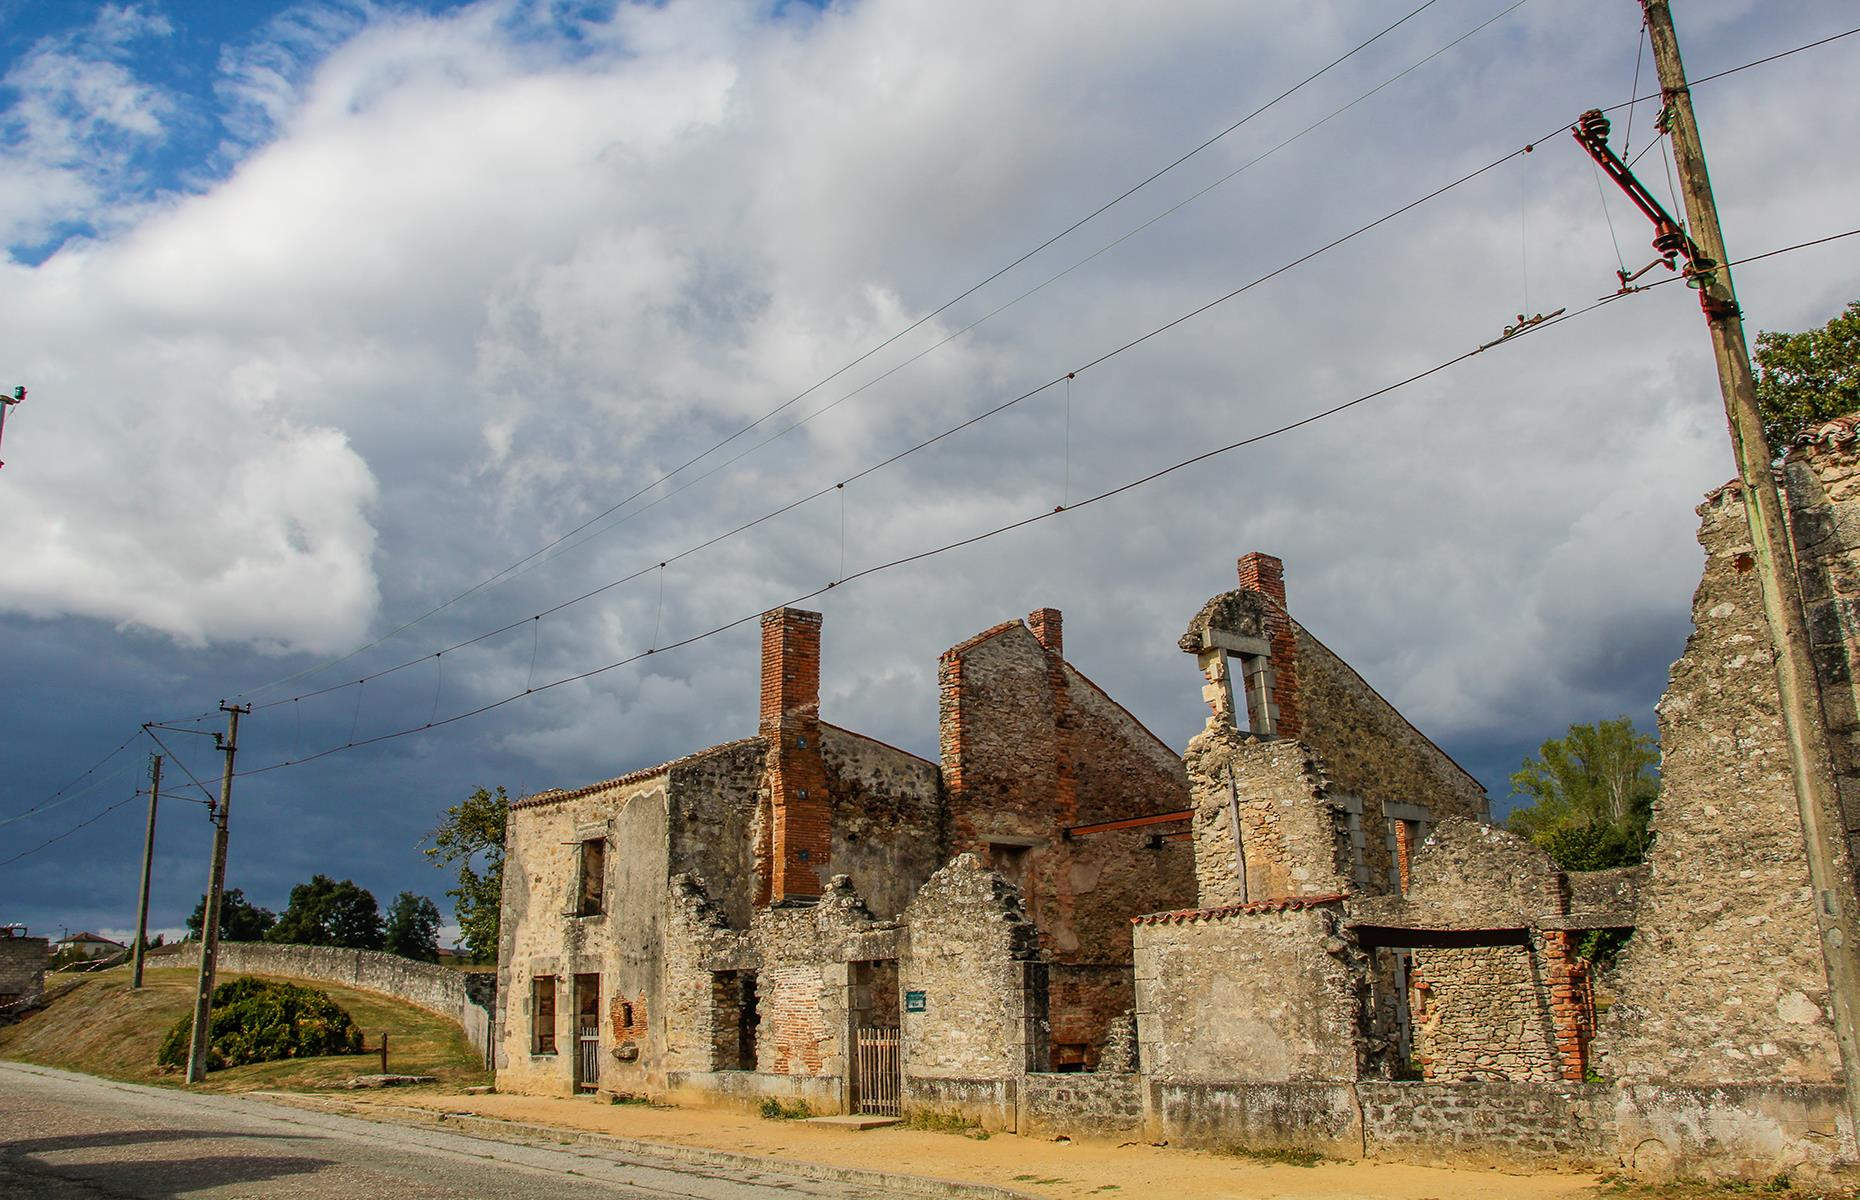 Slide 44 of 68: The village of Oradour-sur-Glane, in France, is a gut-wrenching reminder of the atrocities of the Second World War. On 10 June 1944, 642 inhabitants were shot or burned alive by the German forces.